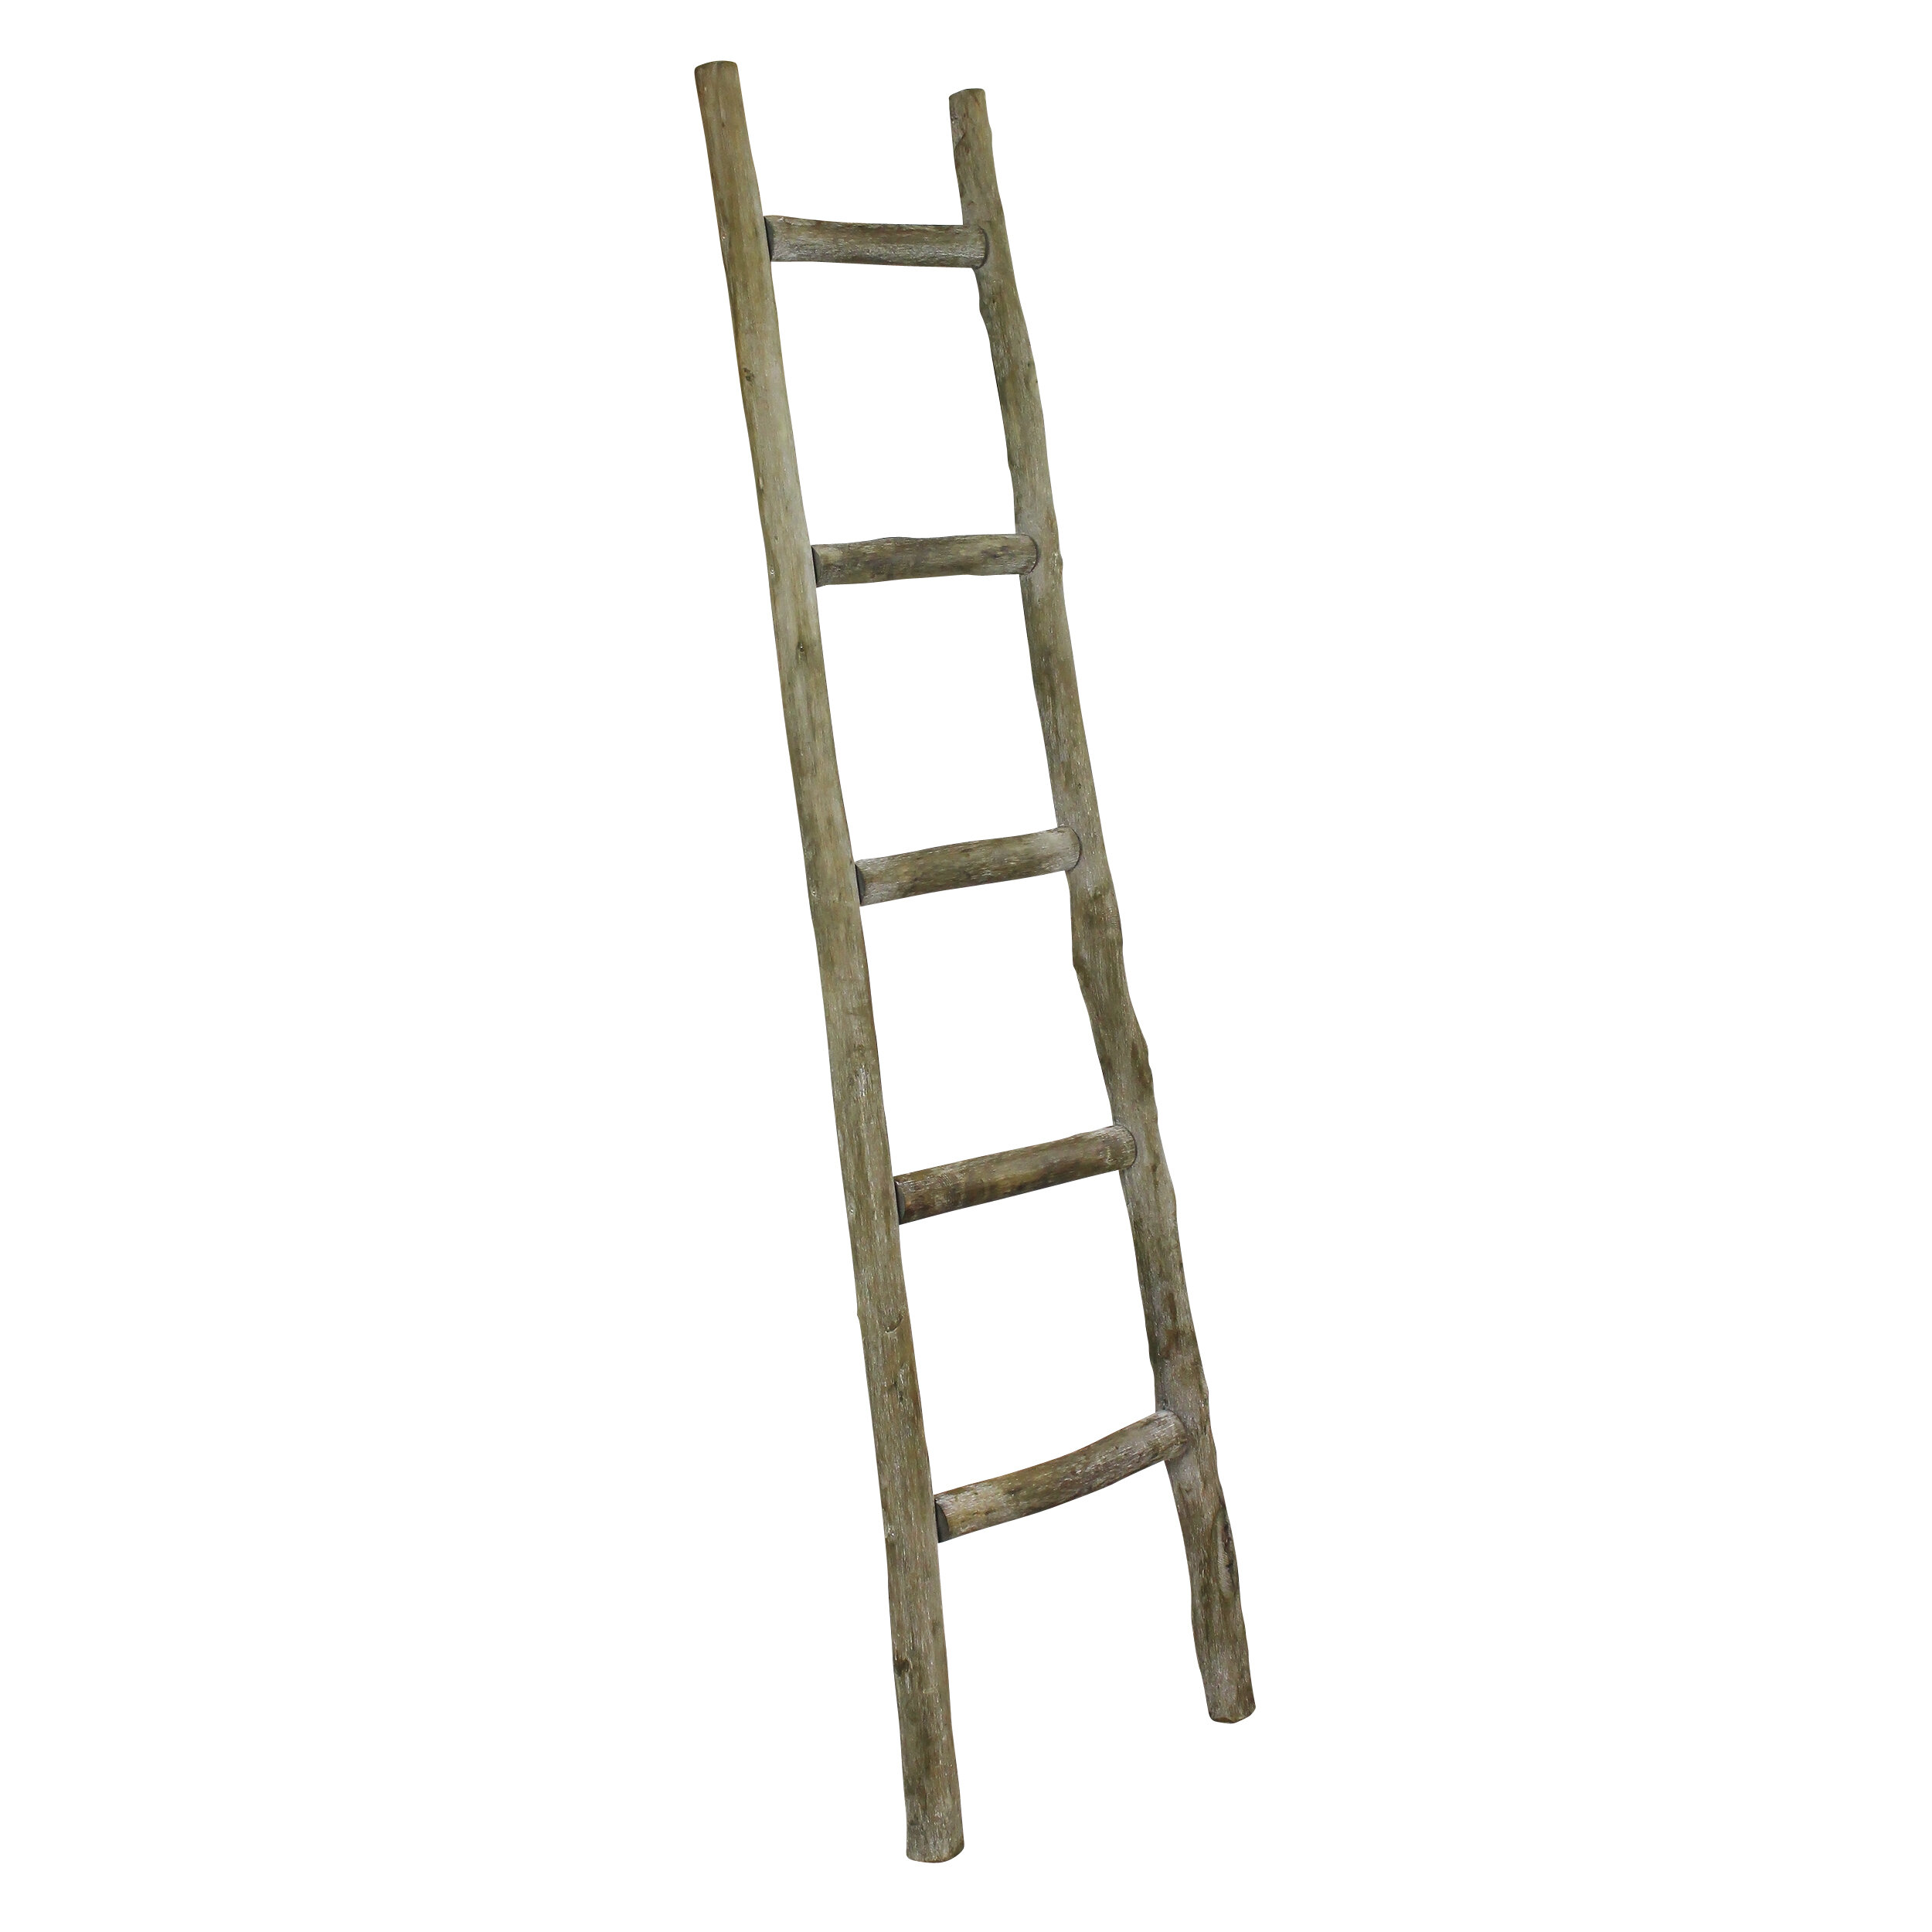 FREE SHIPPING Rustic Wood 4 ft Blanket Ladder